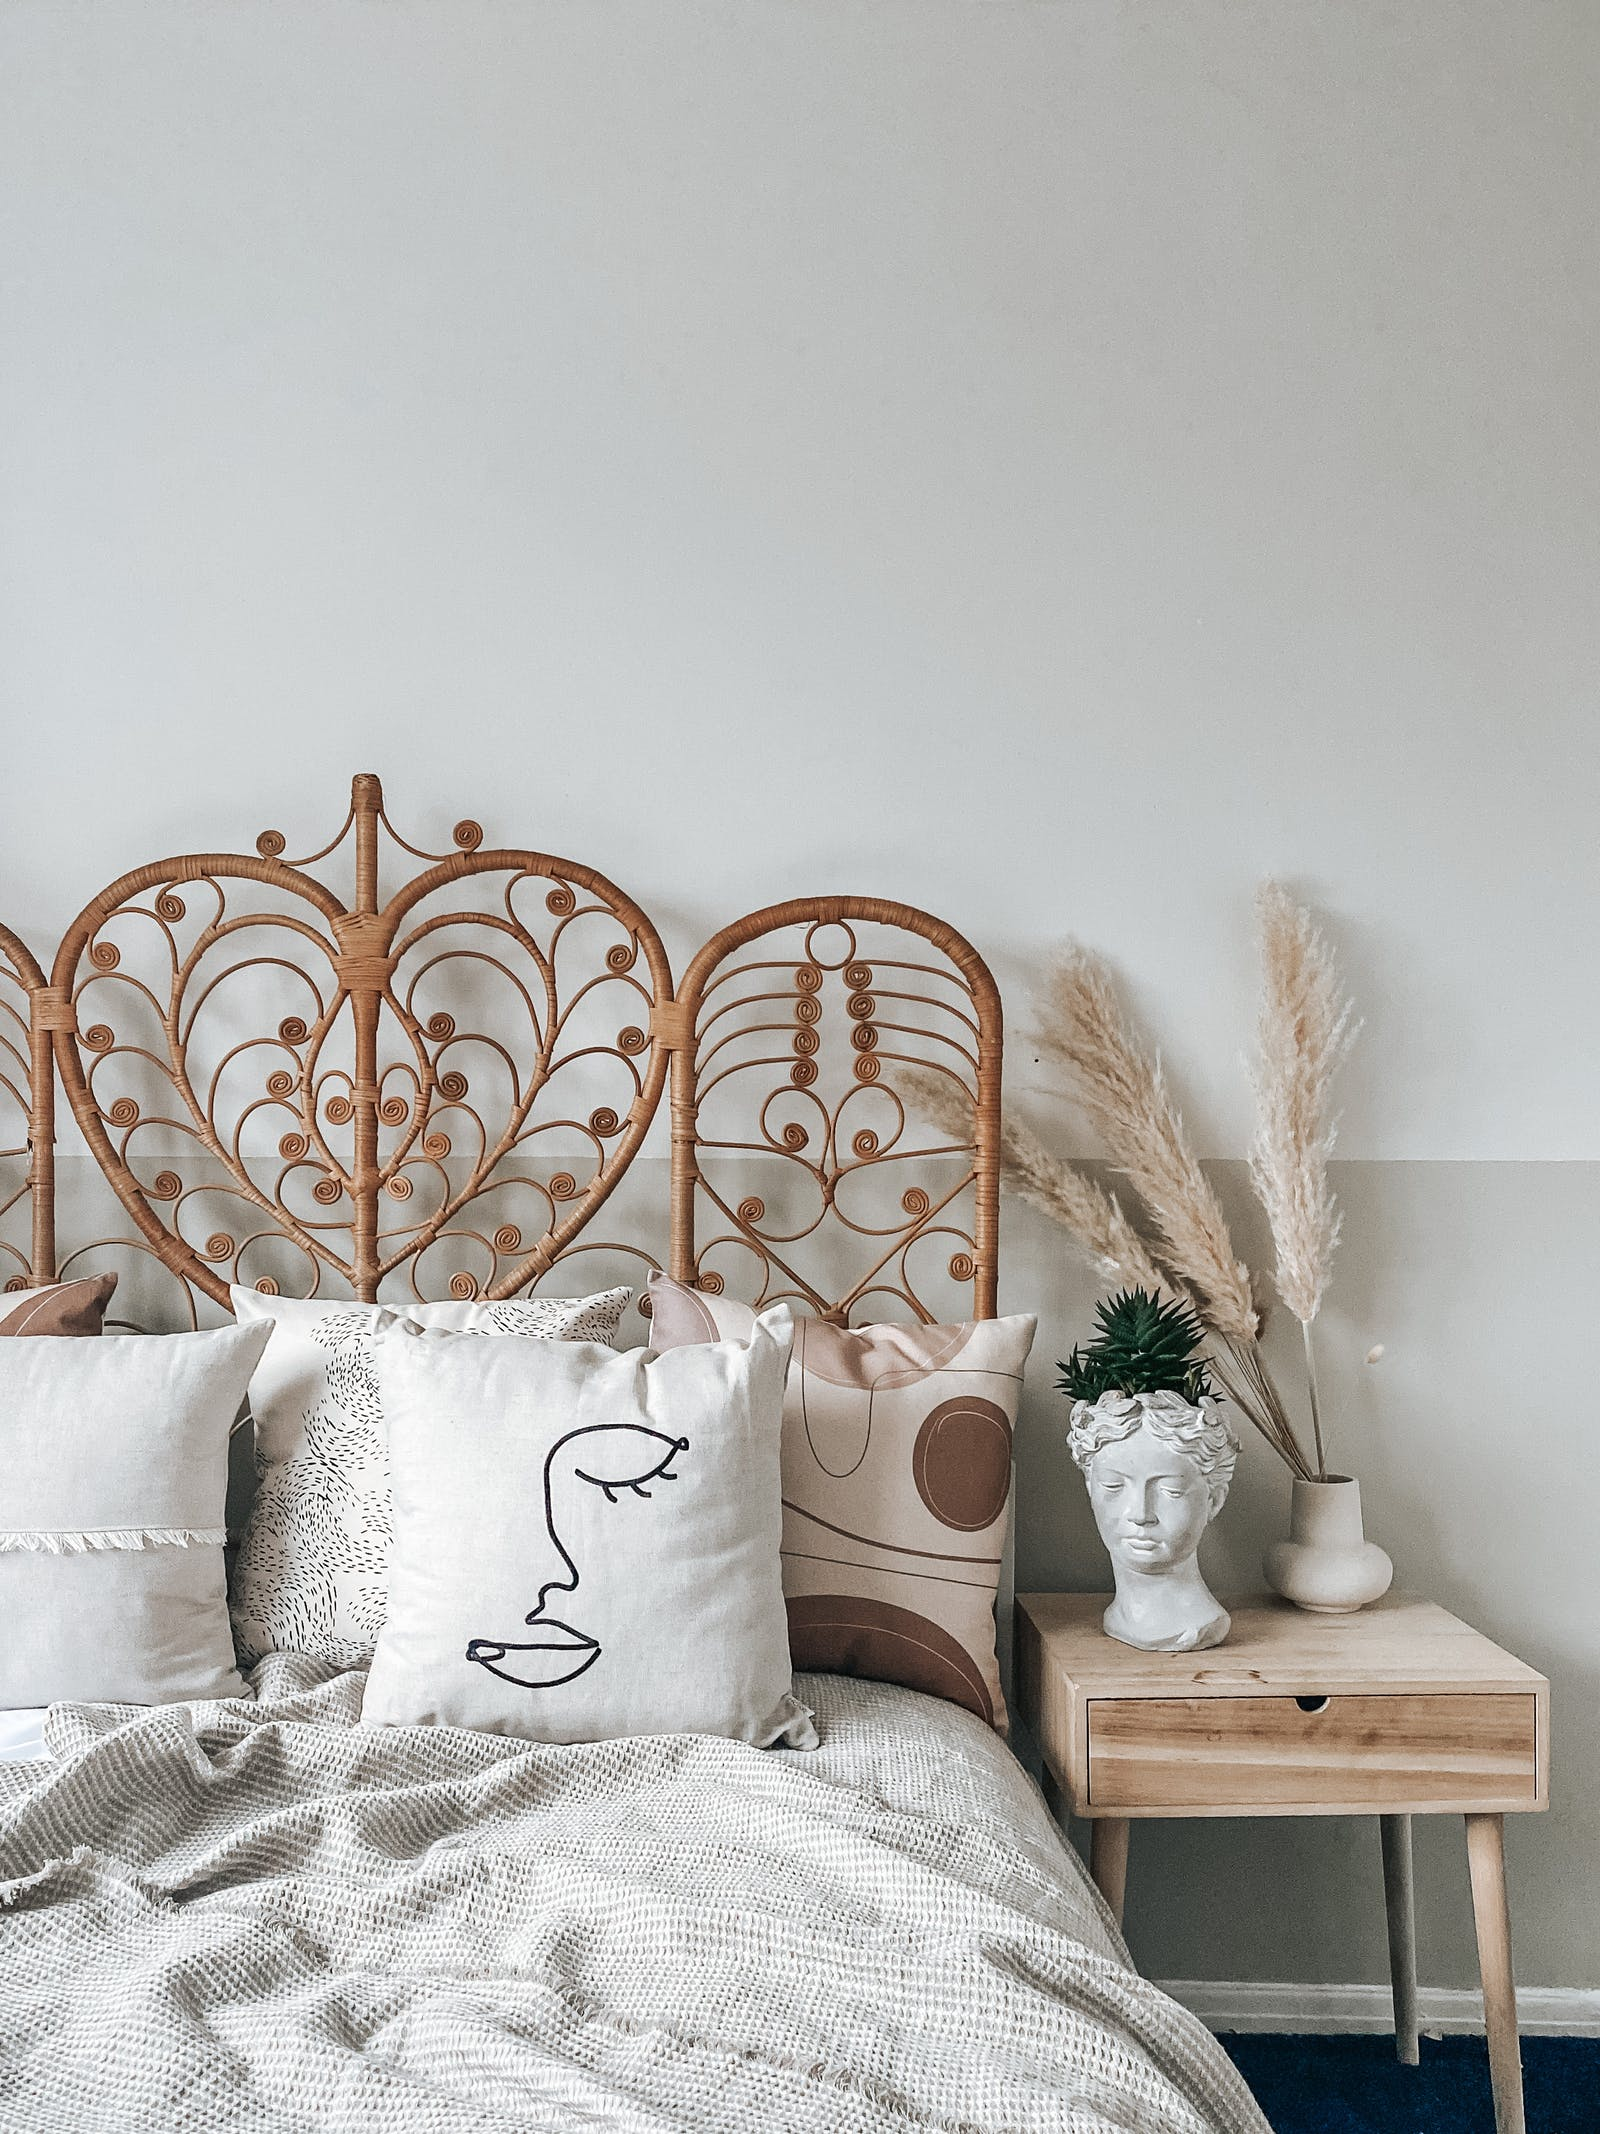 Bedroom Painted in two tone Lick Beige 01 and White 05 with cushions and rattan headboard